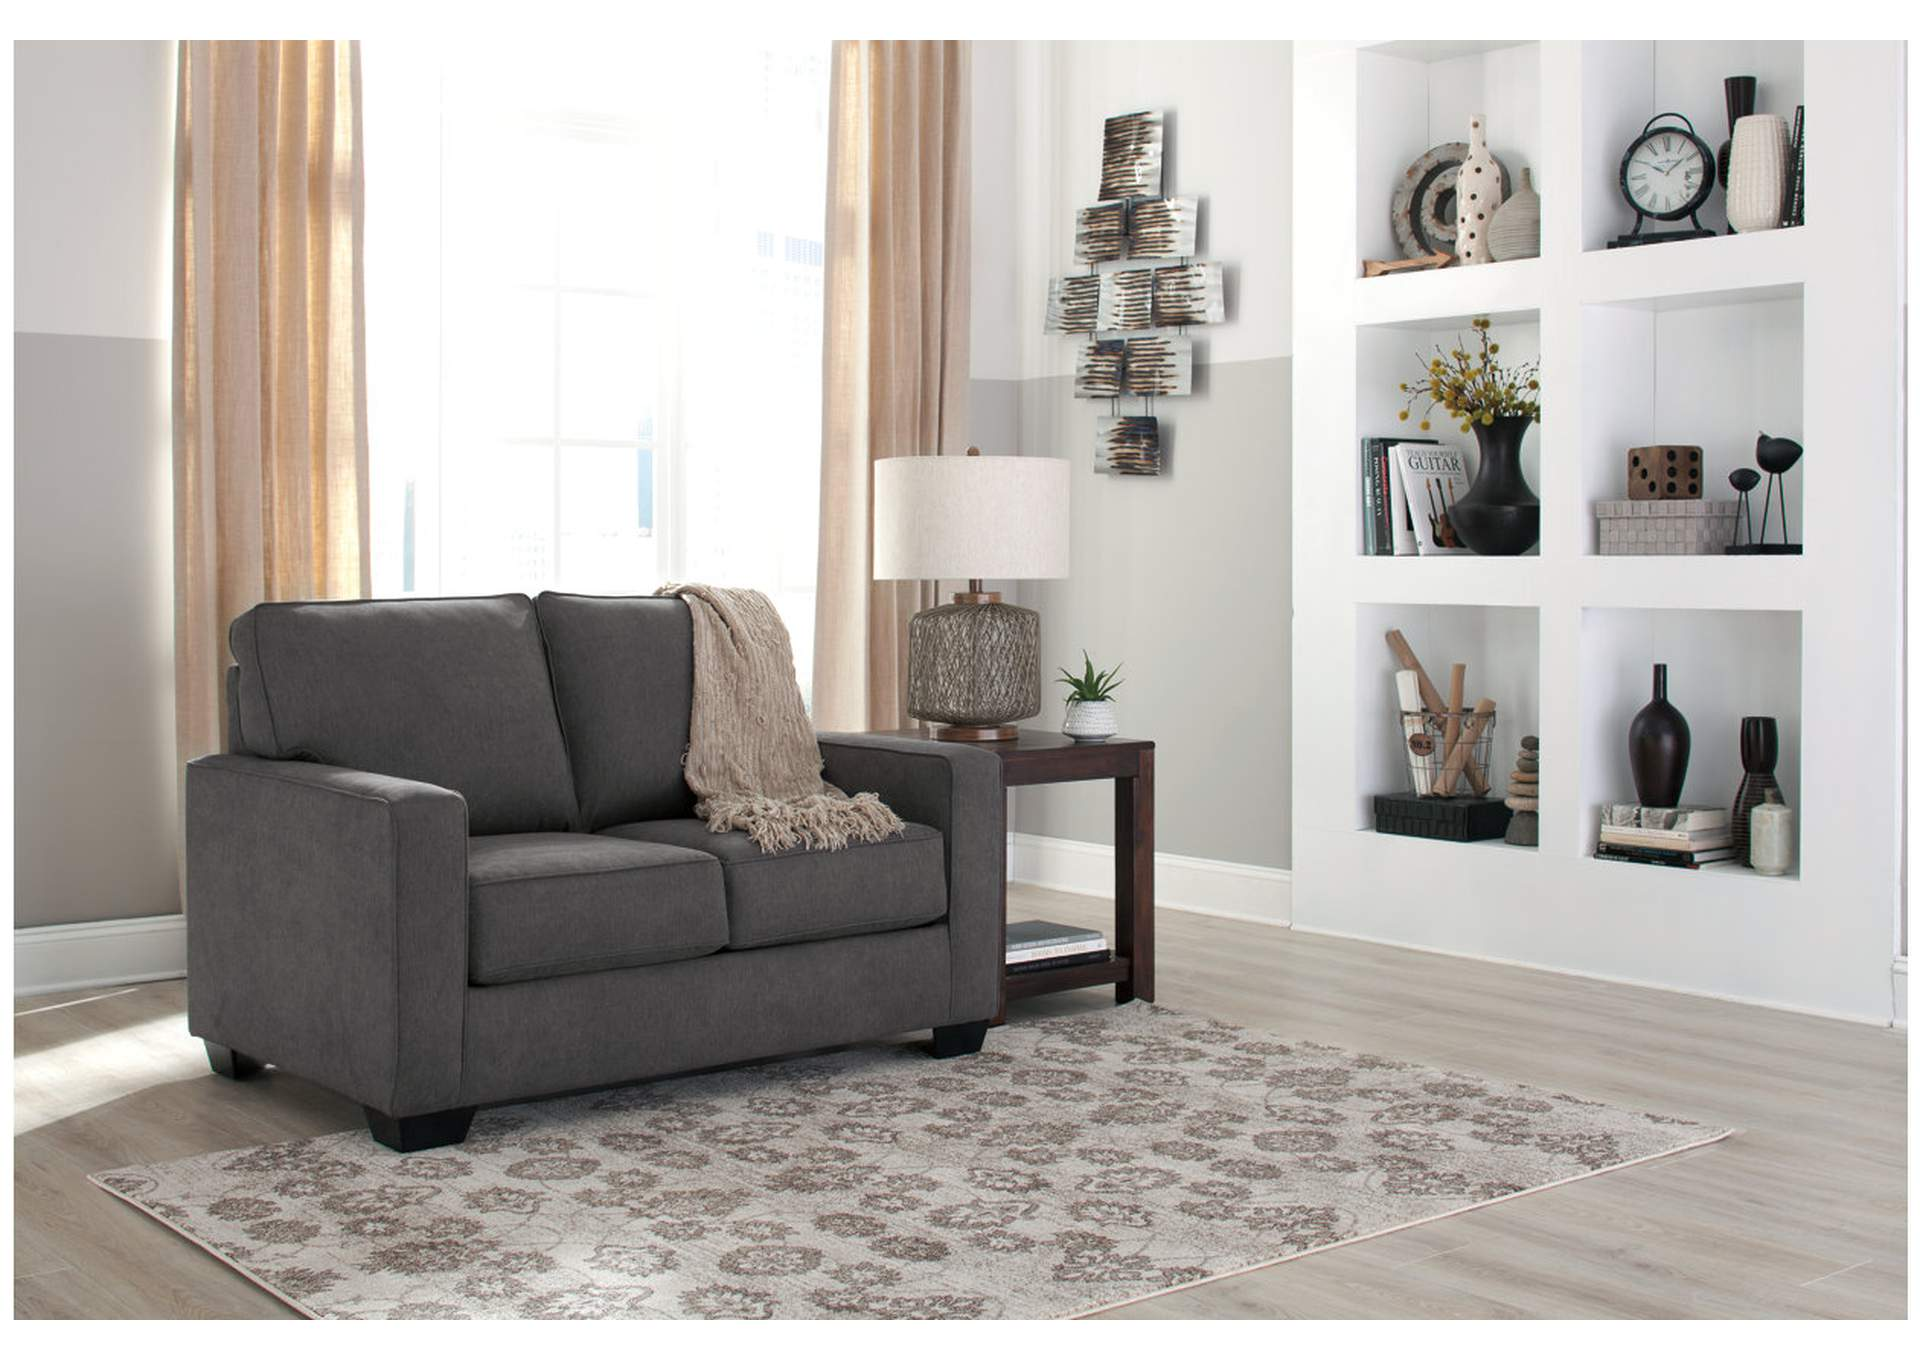 Affordable Furniture Carpet Chicago Il Zeb Charcoal Twin Sofa